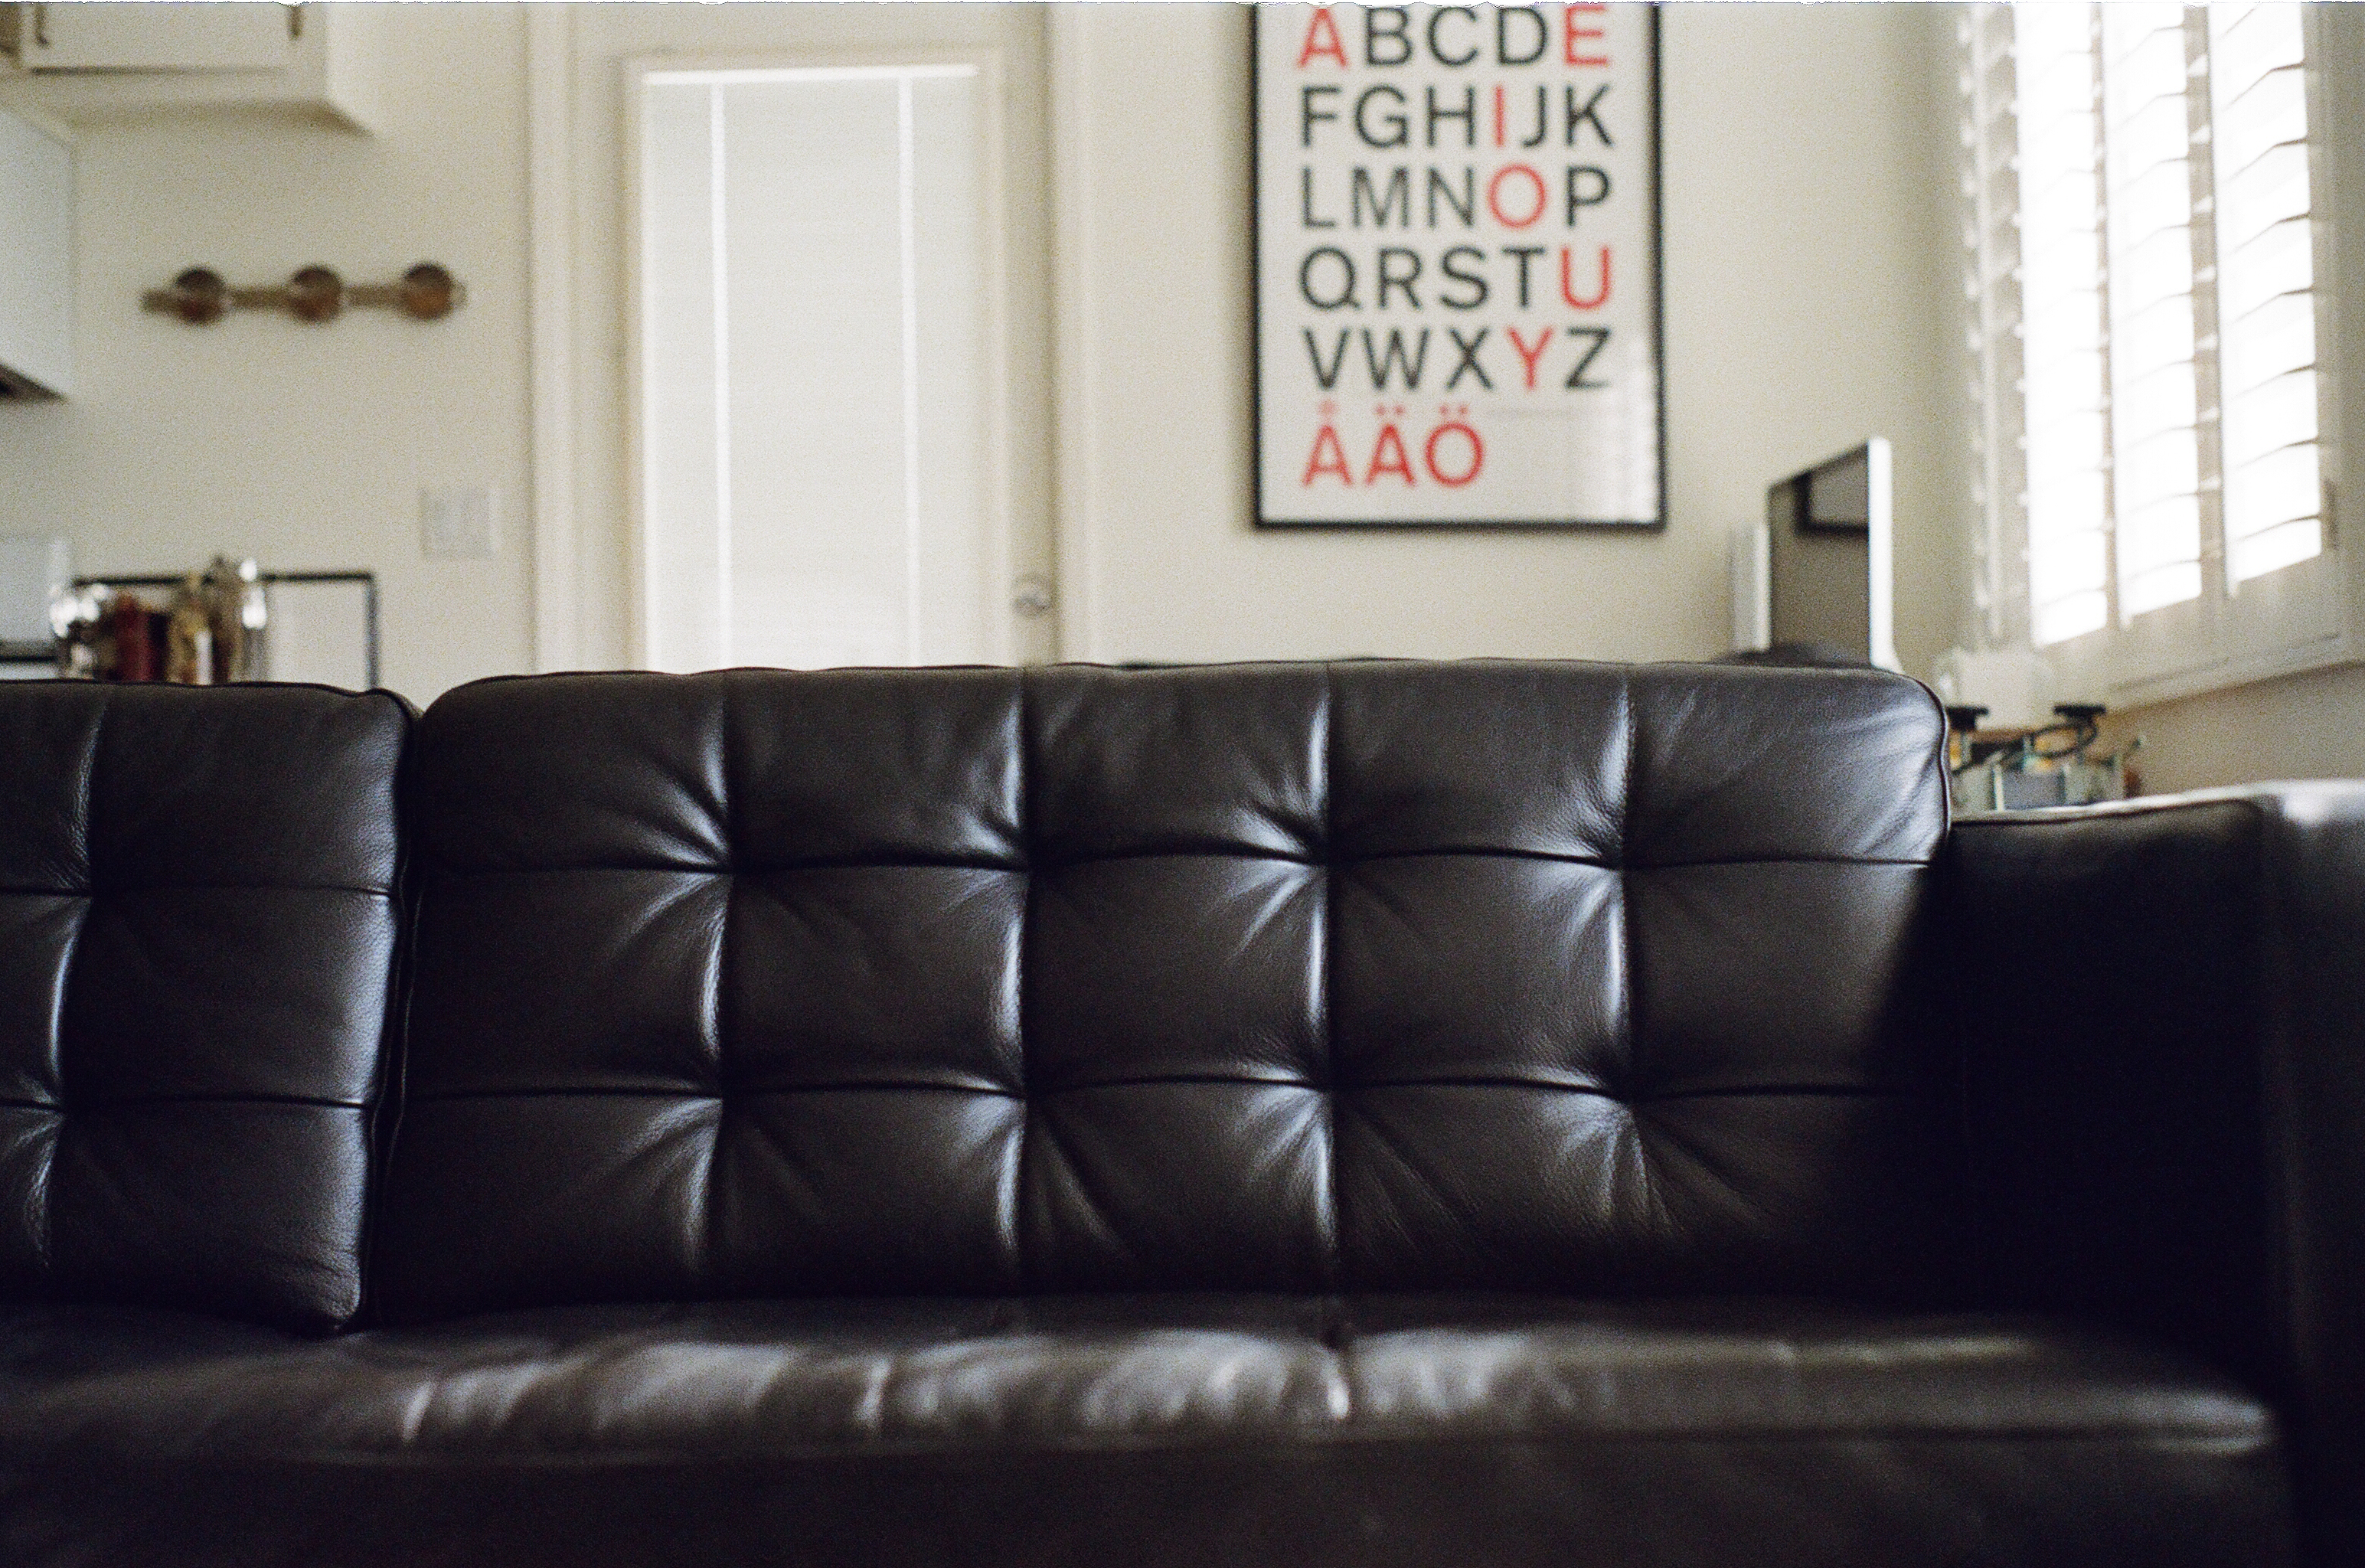 living room couches. couch  Free stock photo of furniture leather